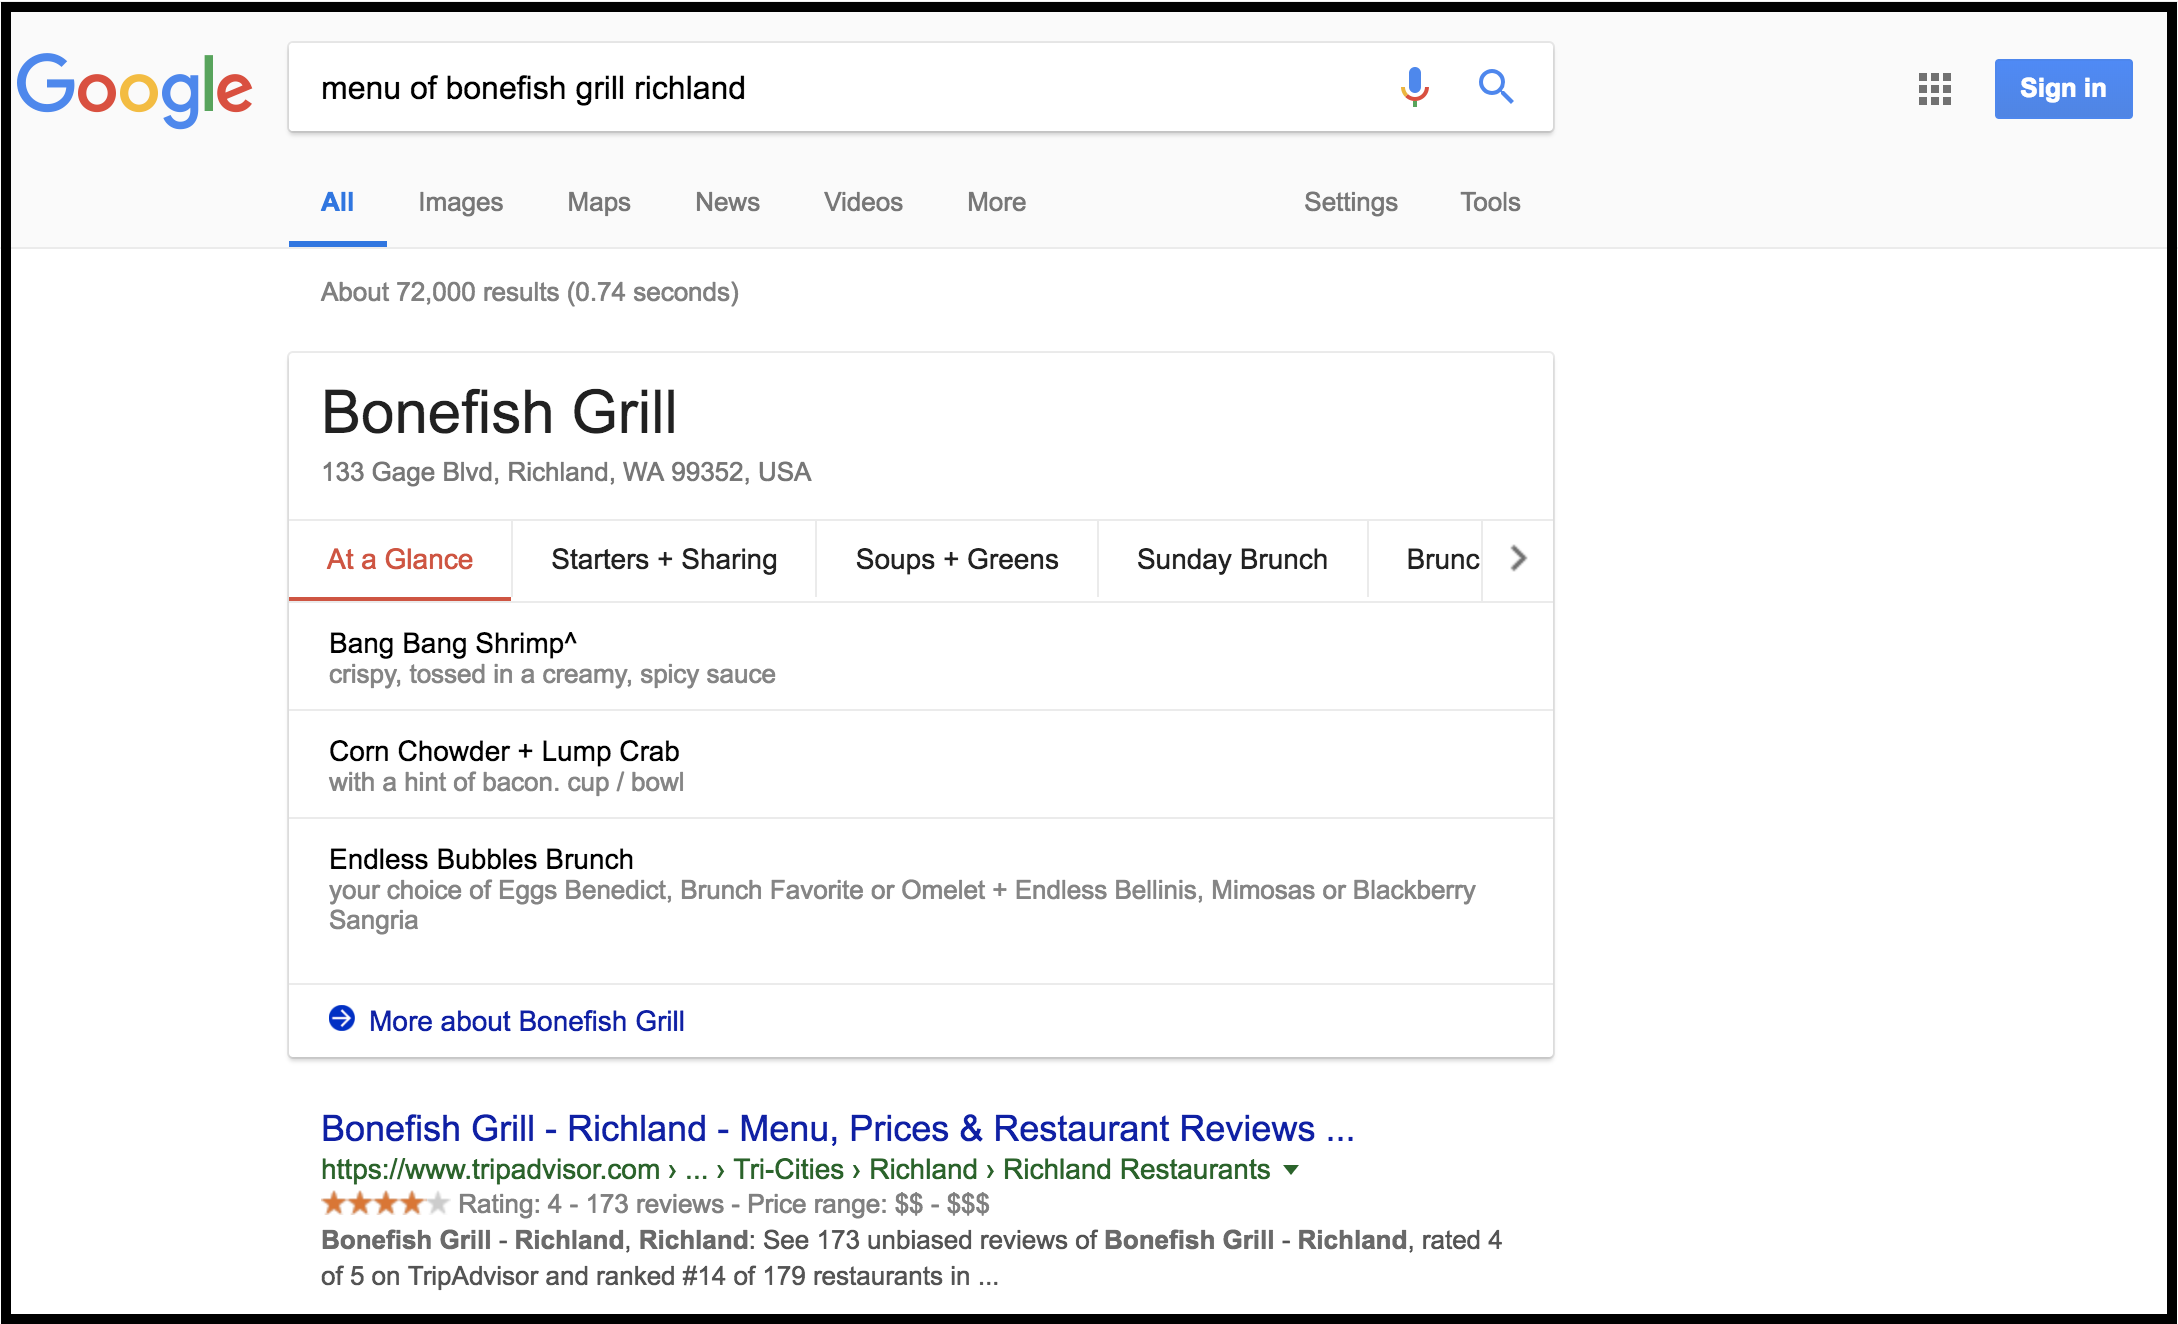 Google displays the menu of Bonefish Grill directly on the search results page